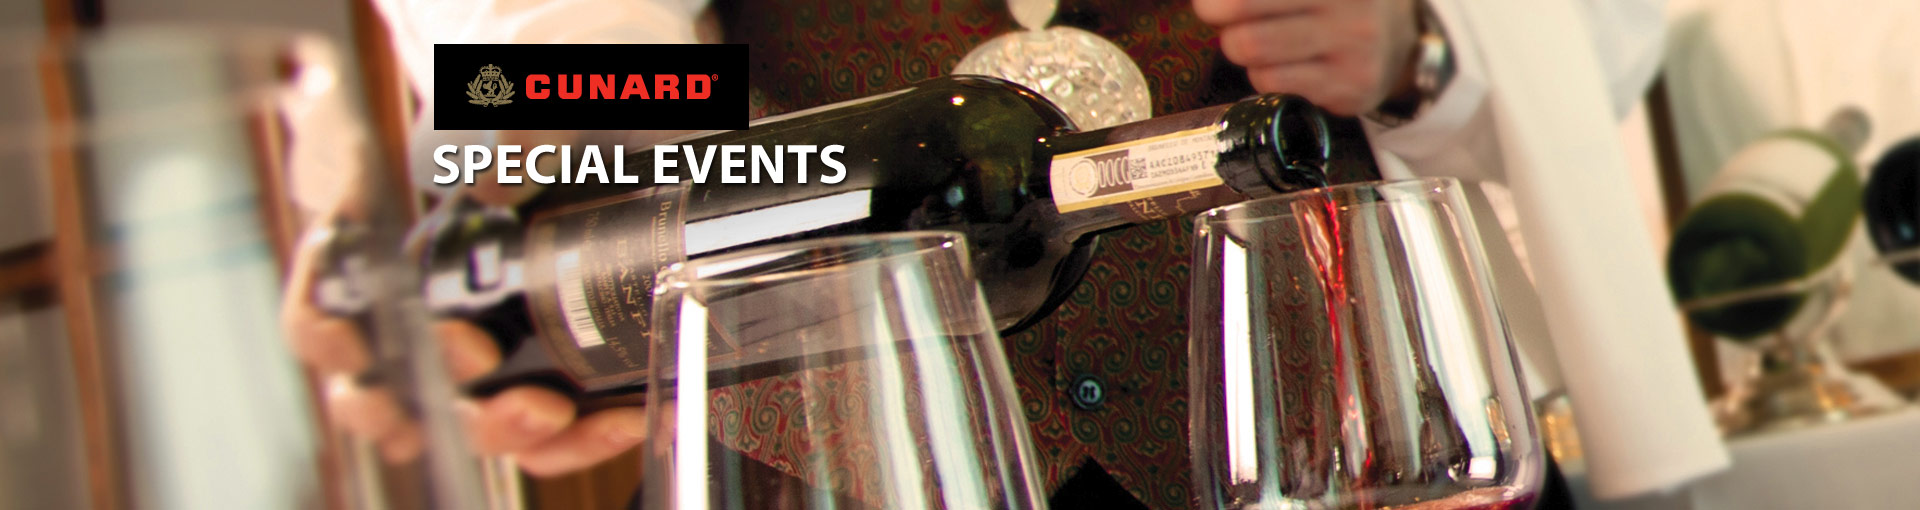 Cunard Line Special Events